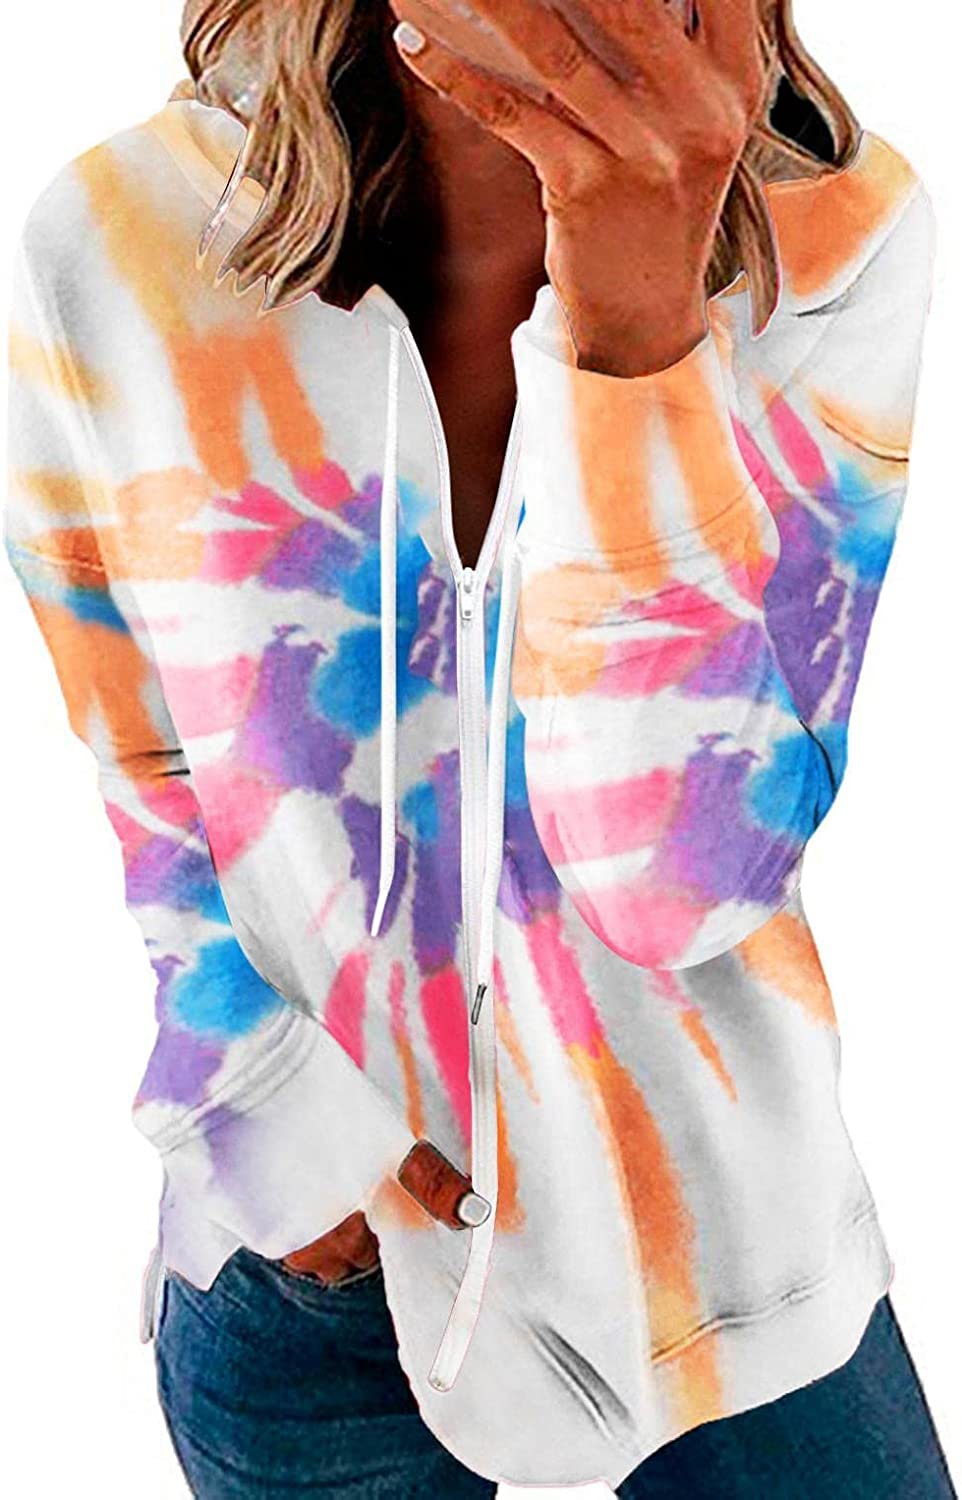 AODONG Womens Zip-Up Hoodie Long Sleeve Casual Tie-Dyed Lightweight Pullover Sweatshirt Drawstring Stretchy with Pockets